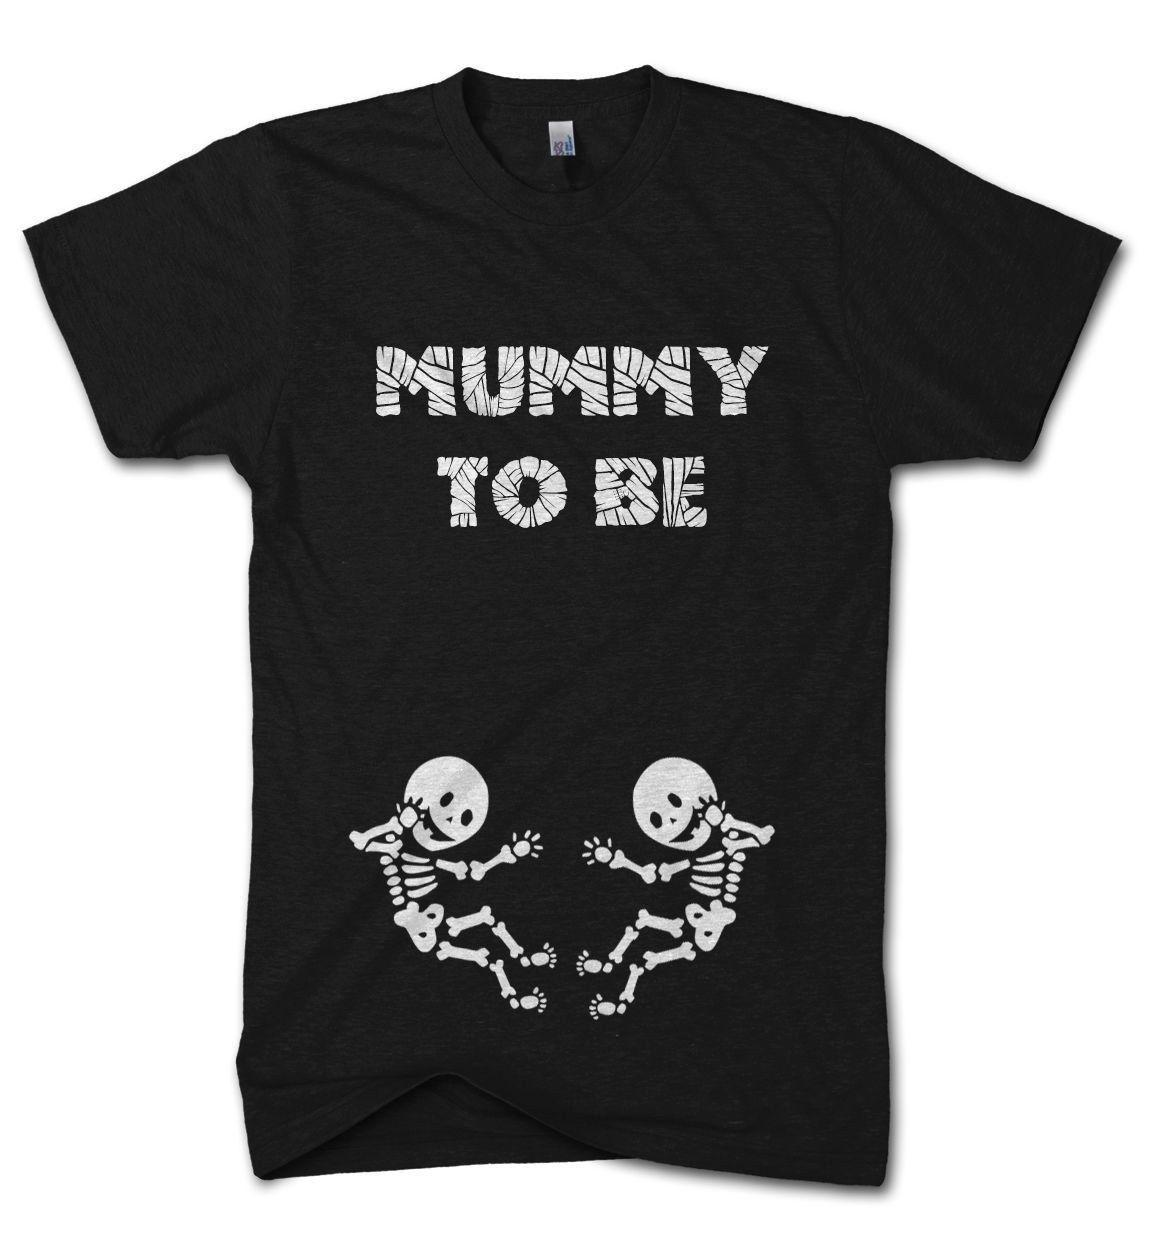 885e9d1b Halloween Mummy To Be Twins T Shirt Skeleton Baby Scary Funny Pregnant  Costume 2018 New Short Sleeve Men T Shirt 100% Cotton Family Top Online T  Shirts Buy ...